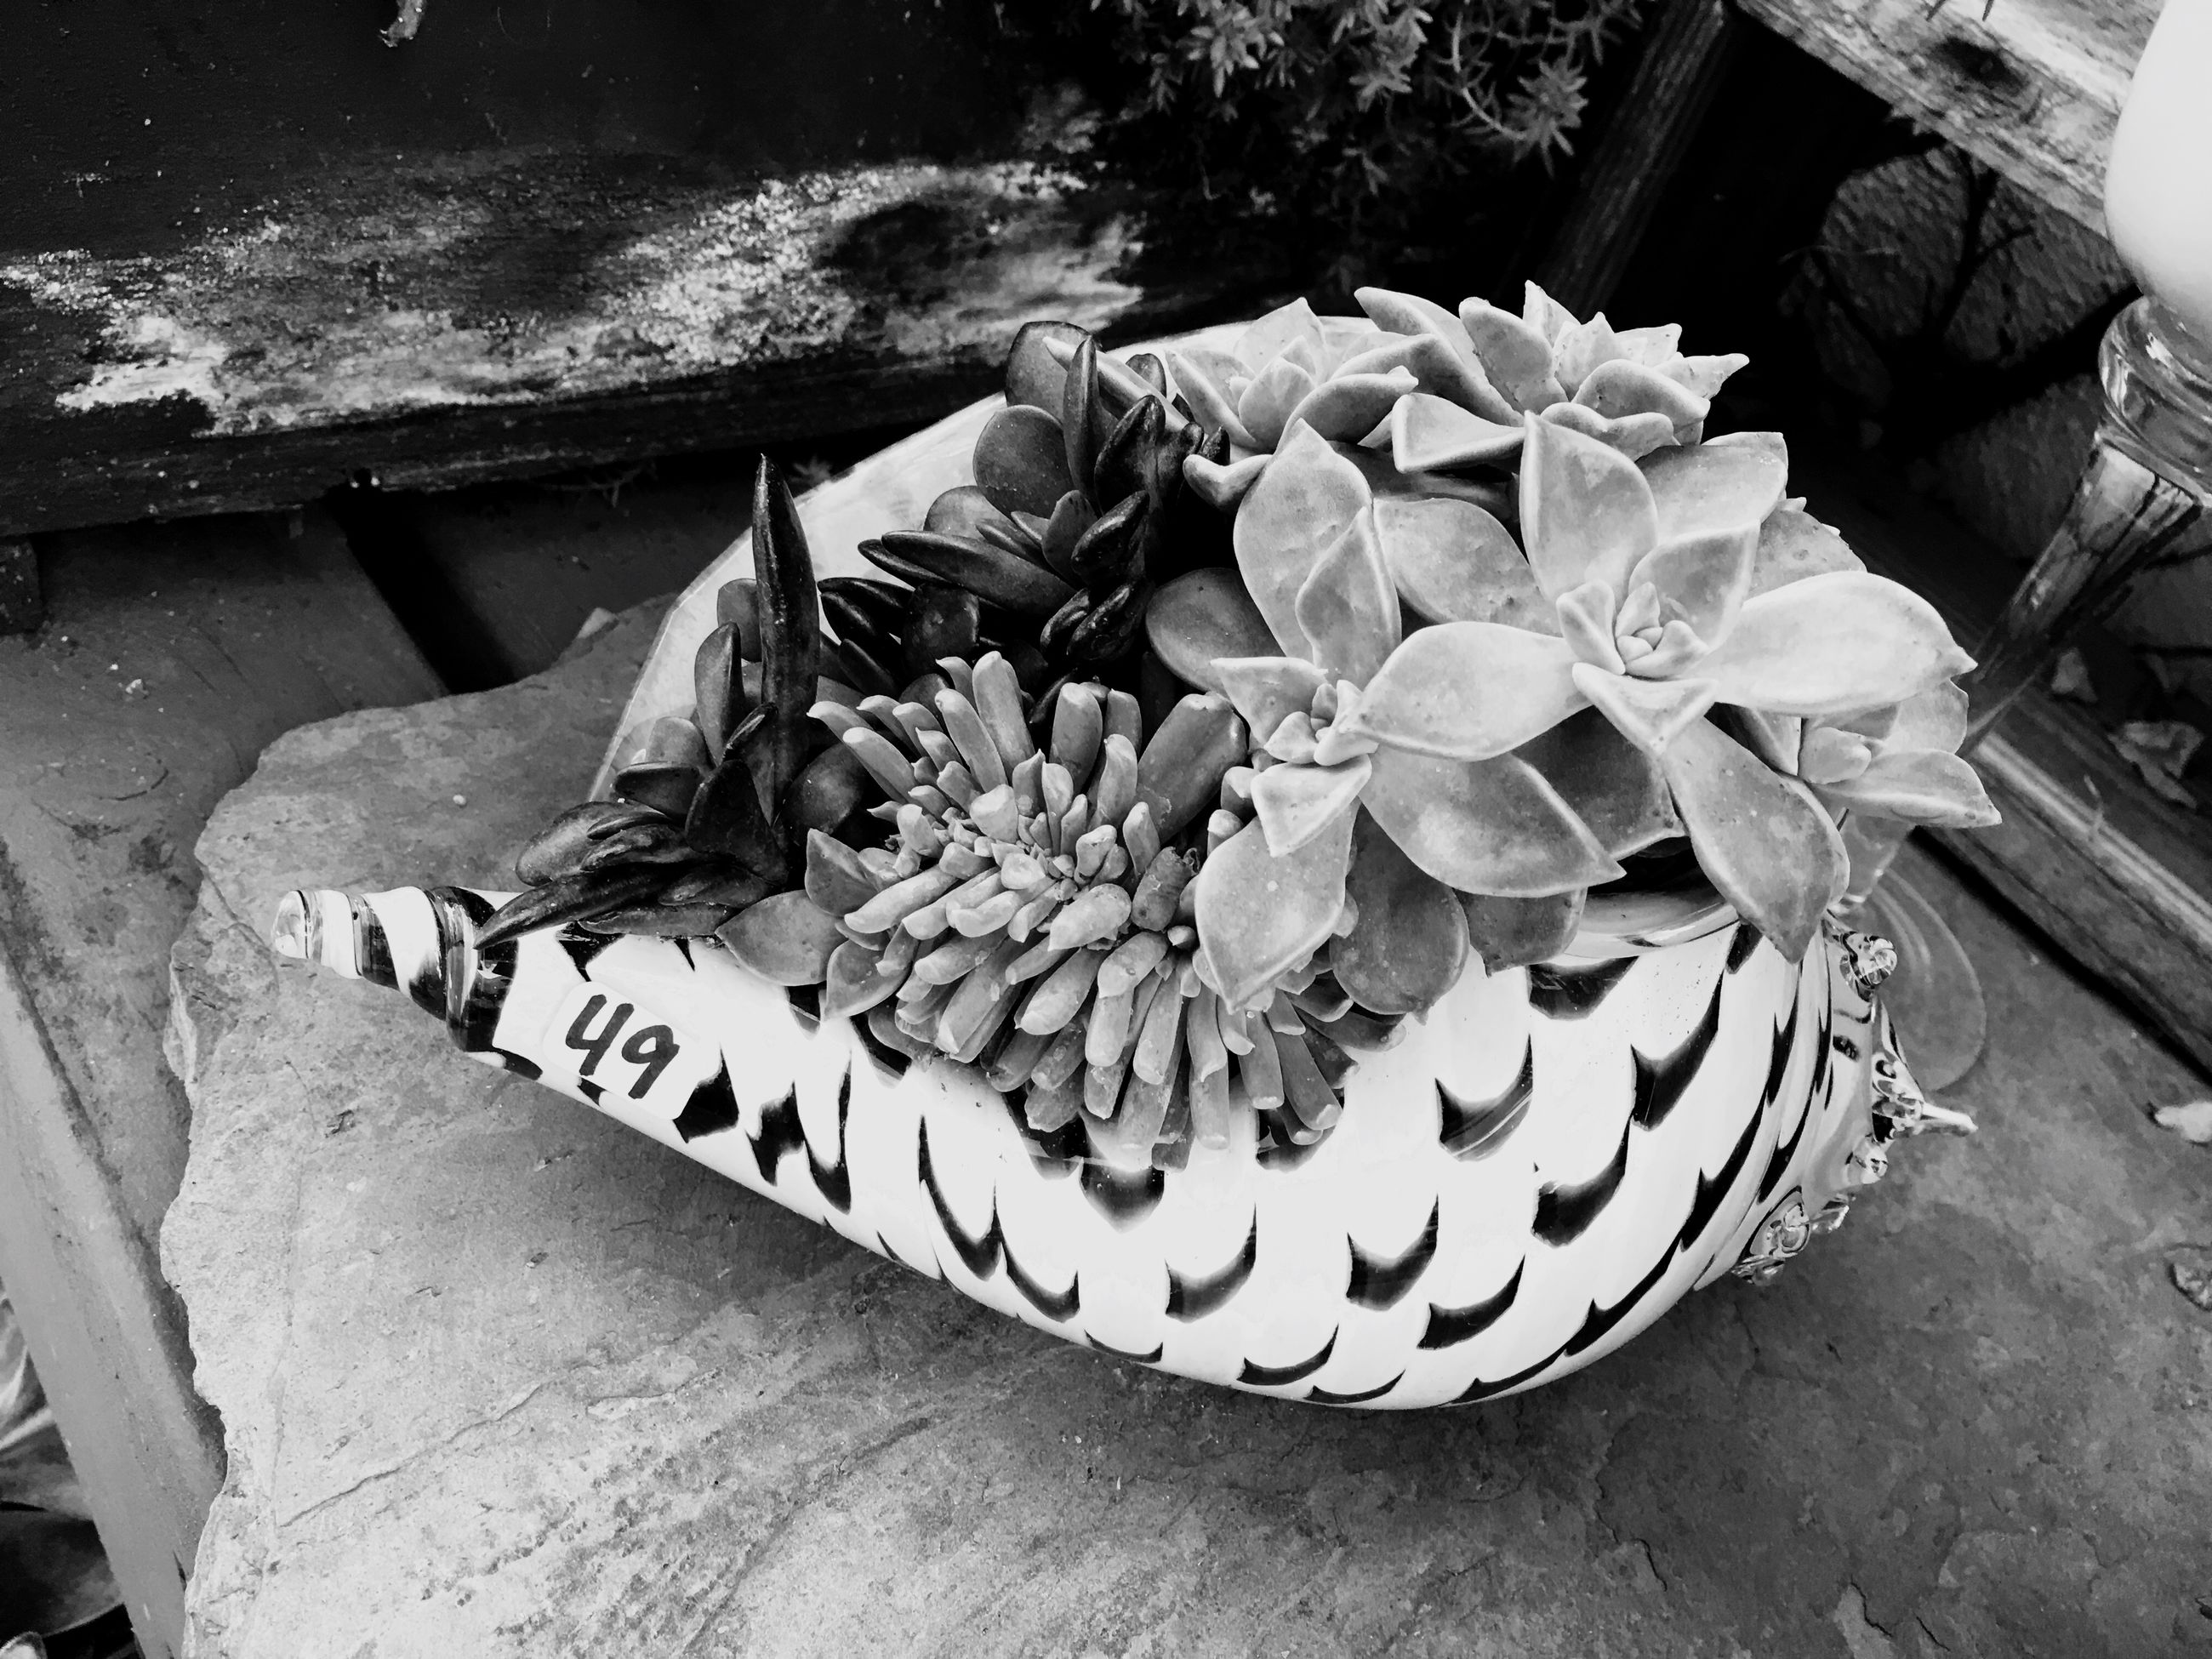 high angle view, flower, water, plant, outdoors, day, freshness, nature, sunlight, beauty in nature, lifestyles, bench, front or back yard, men, basket, sitting, leaf, street